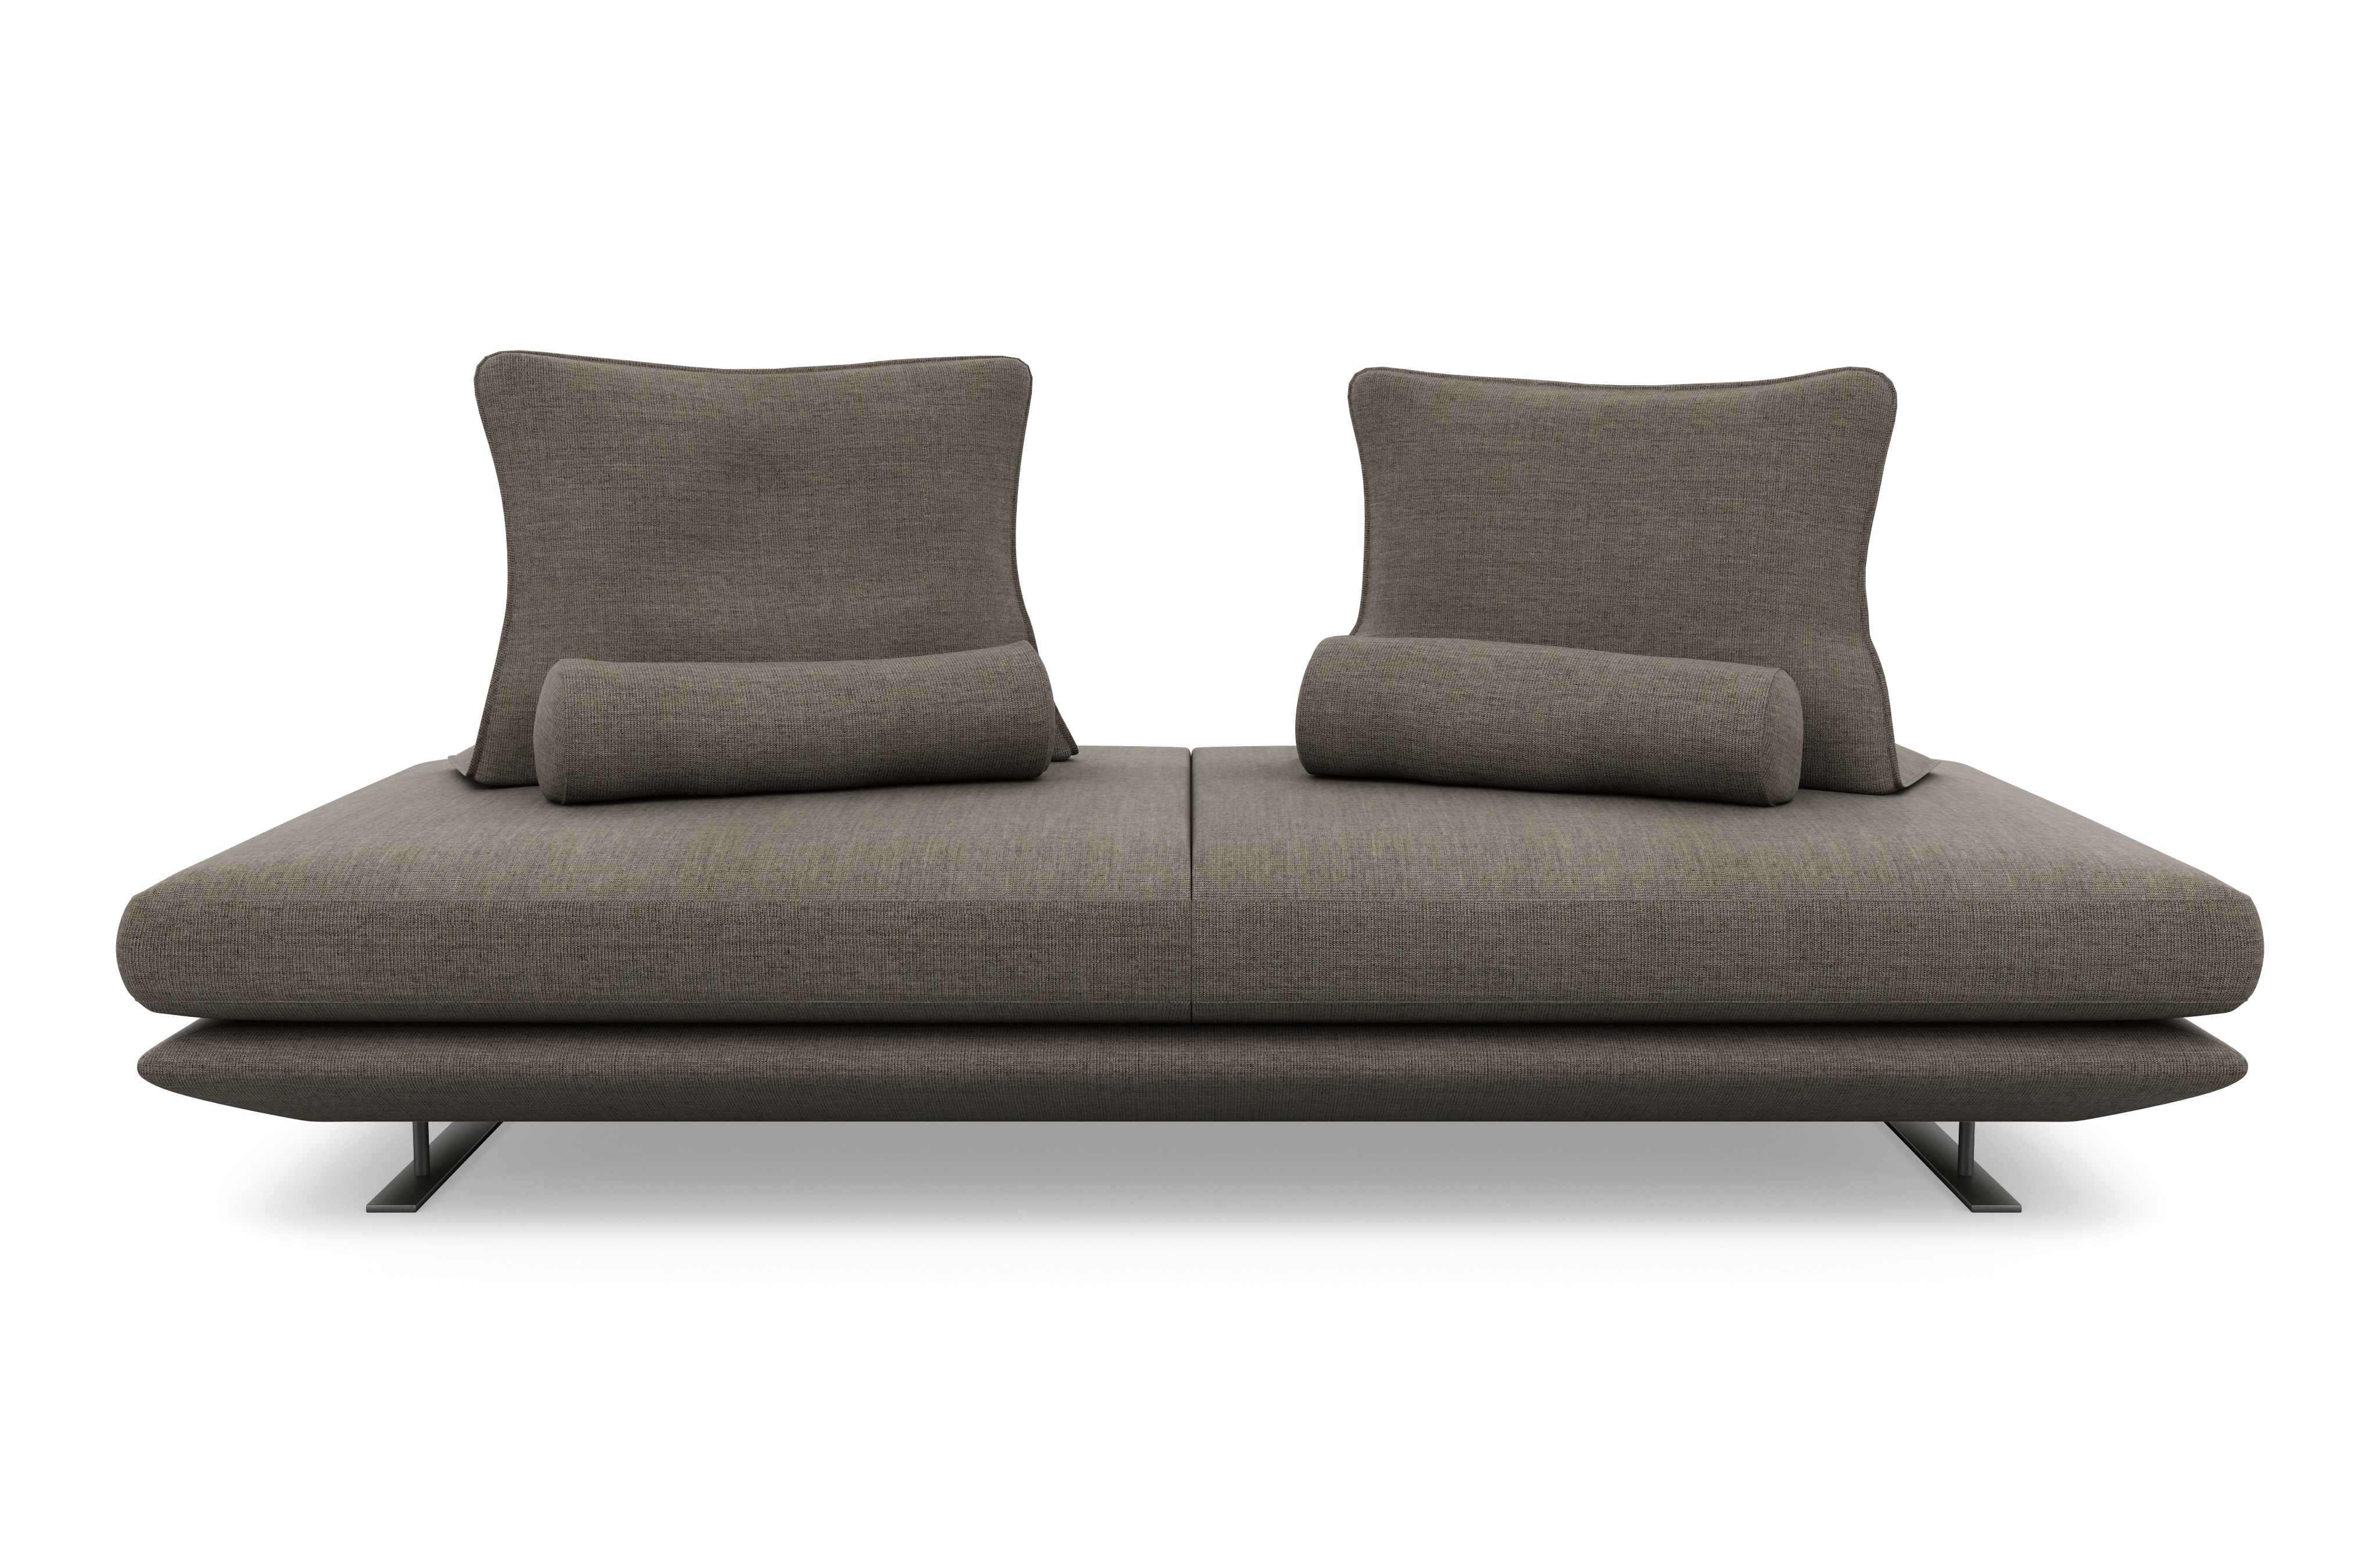 prado sofas from designer christian werner ligne roset official site. Black Bedroom Furniture Sets. Home Design Ideas